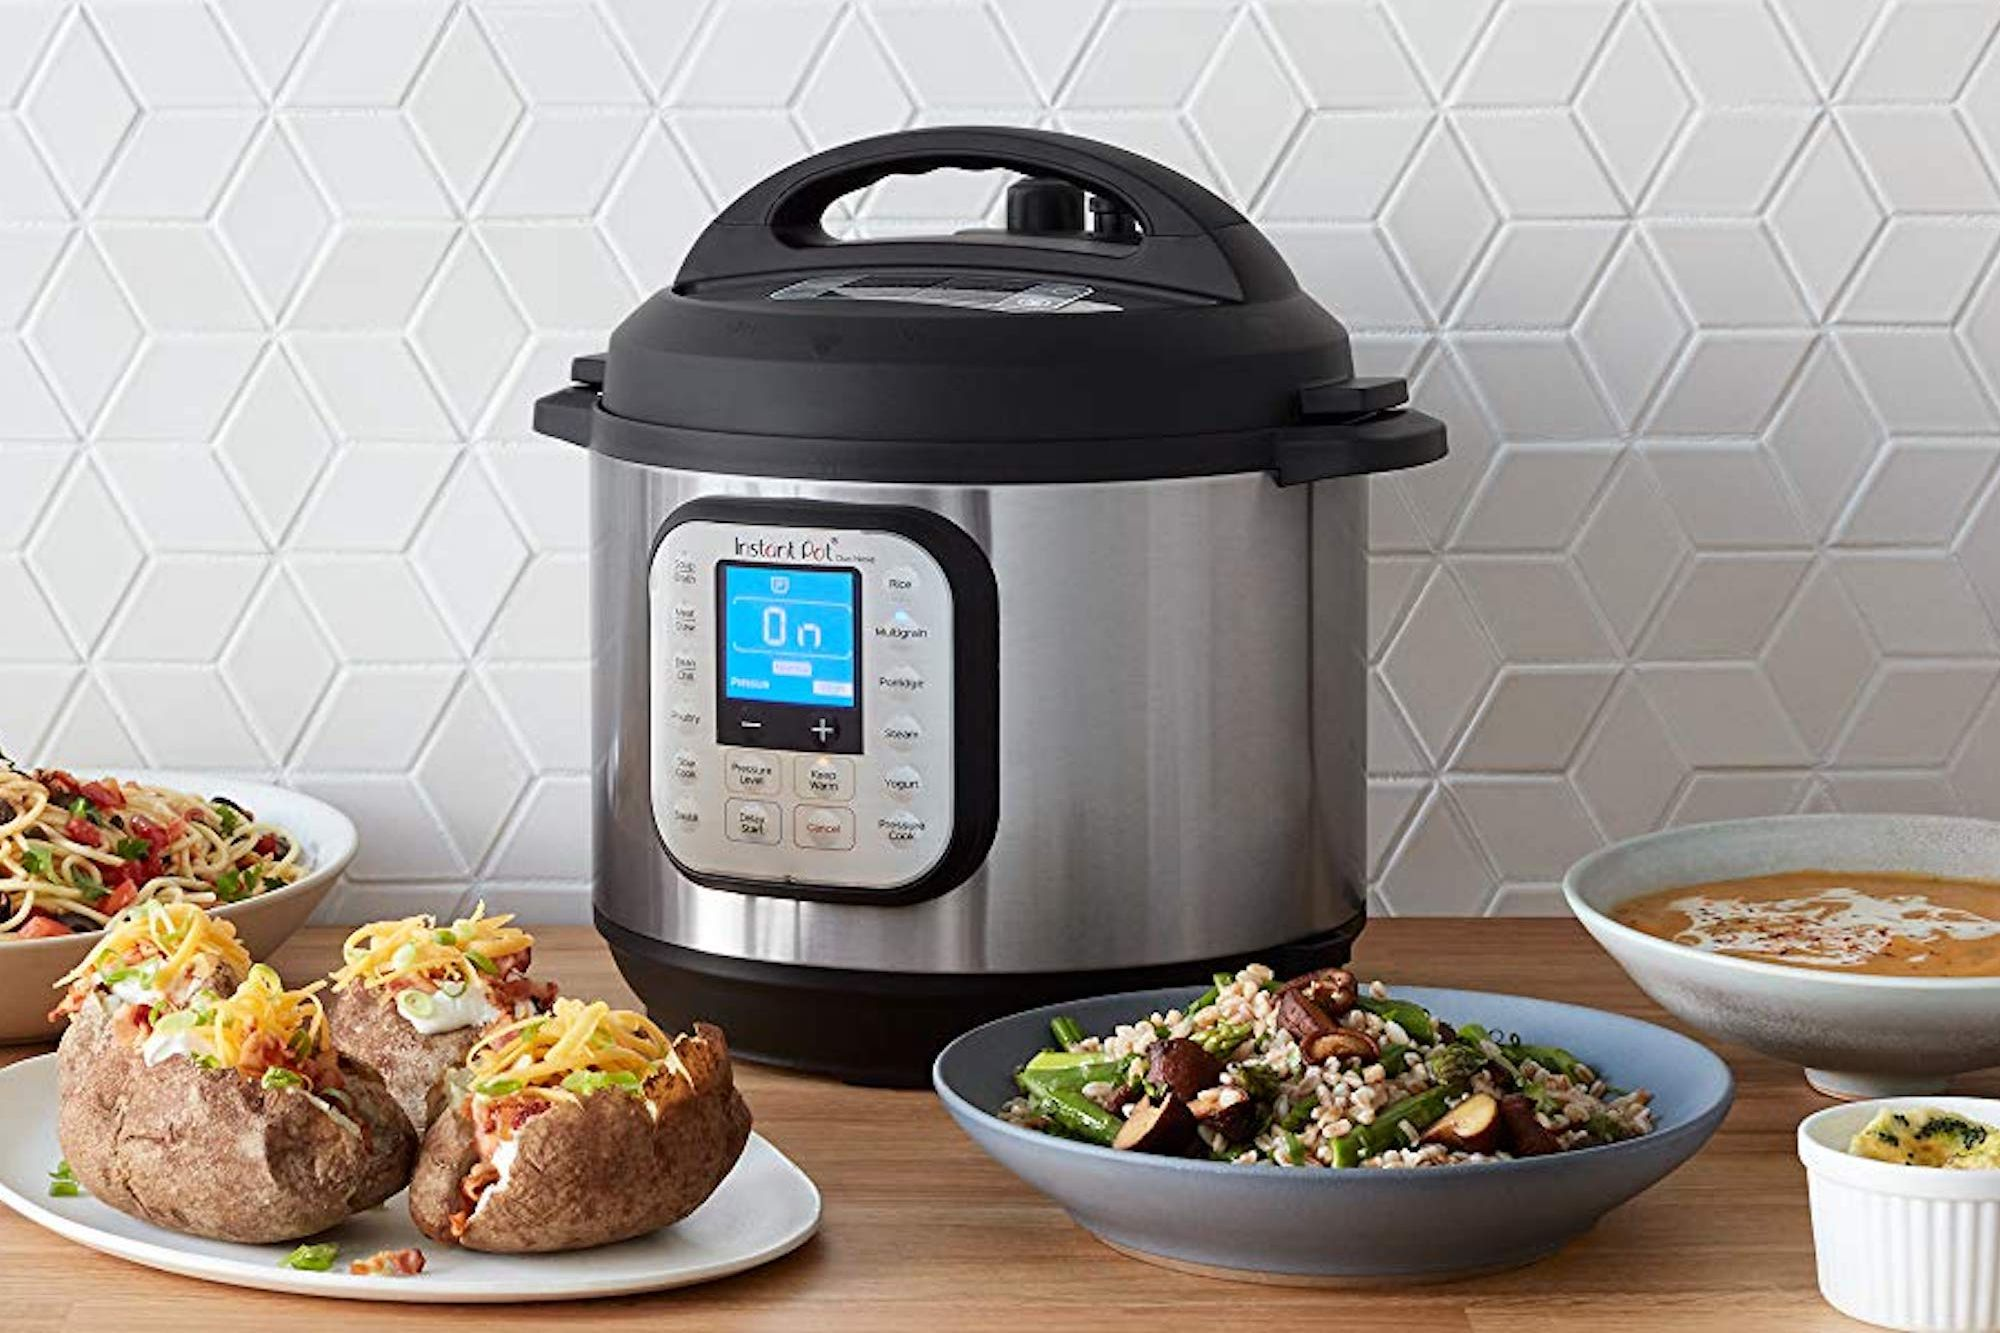 Streamline Your Meal Prep and Save Extra on This Instant Pot Cooker